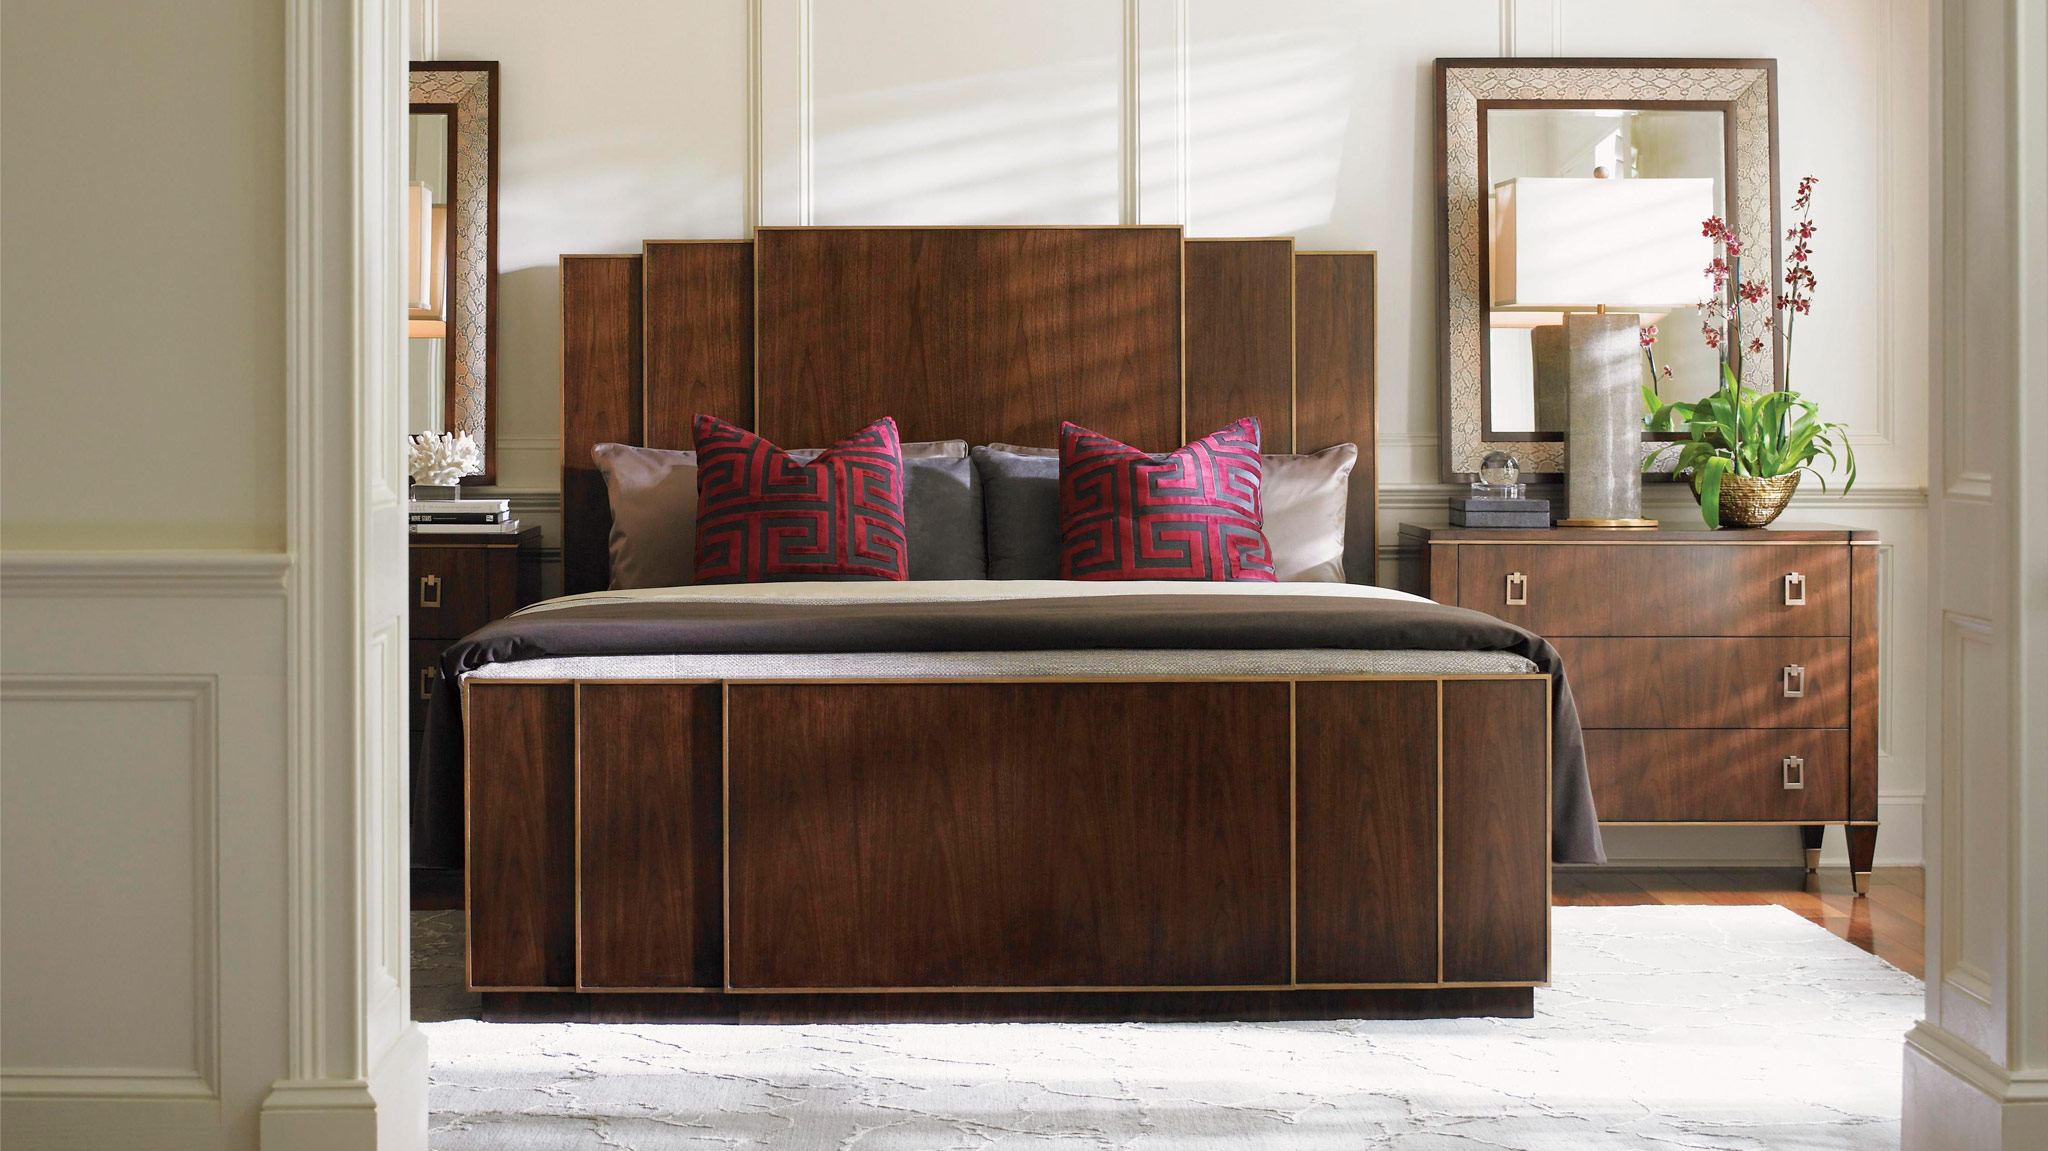 Lexington Furniture: Leaders in Quality & Style | Soda Fine